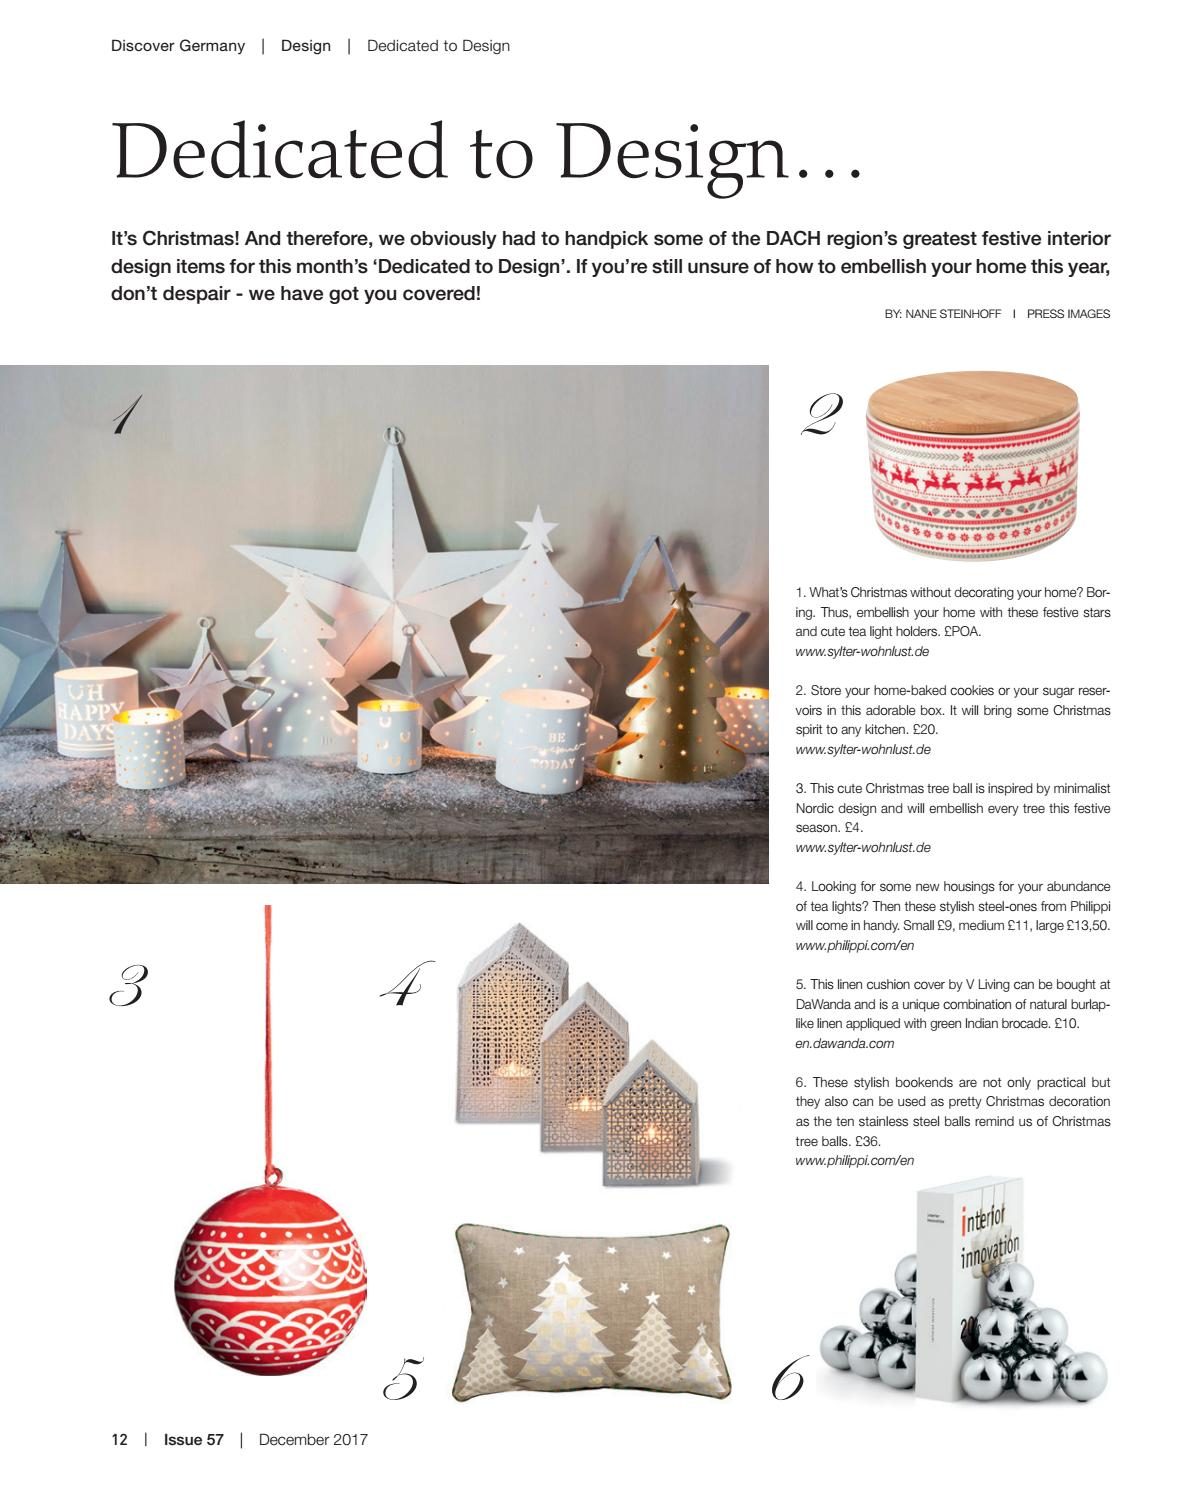 Discover Germany, Issue 57, December 2017 by Scan Group - issuu